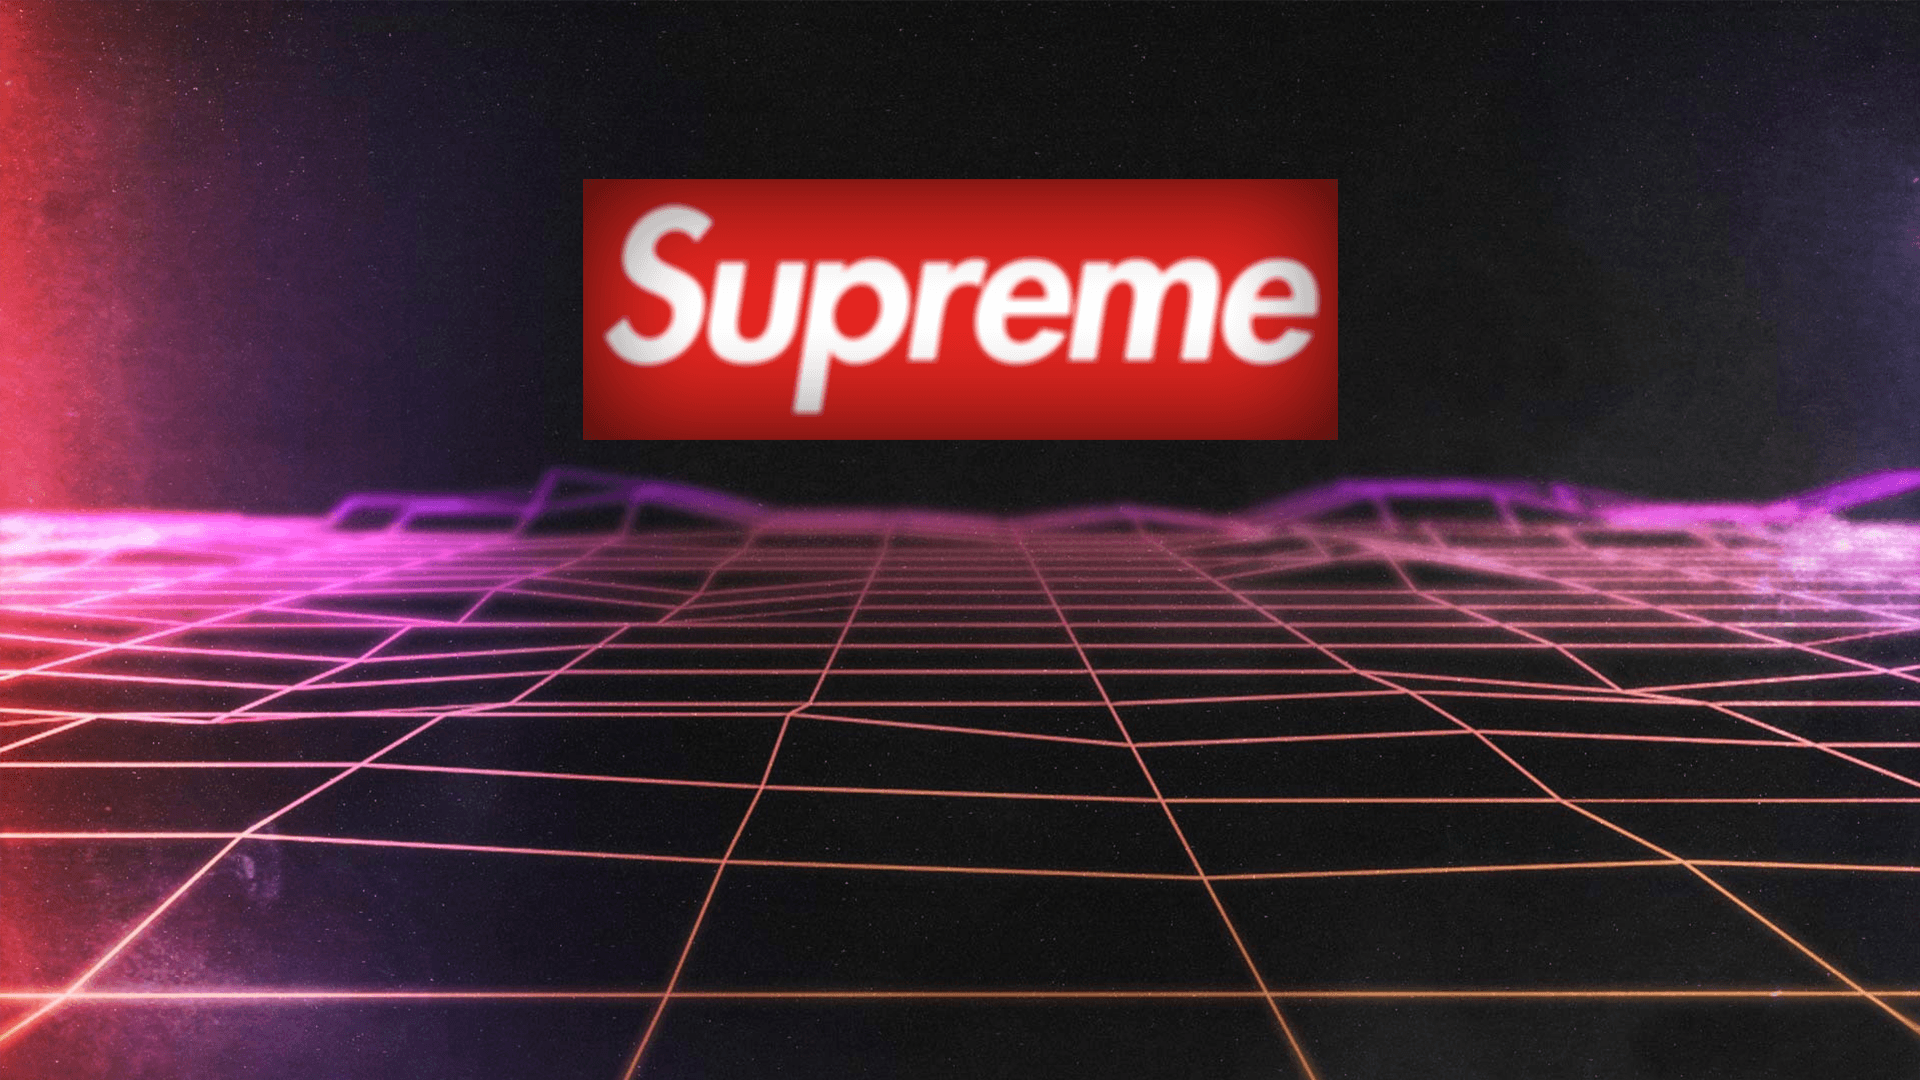 80s Aesthetic Wallpapers   Top 80s Aesthetic Backgrounds 1920x1080